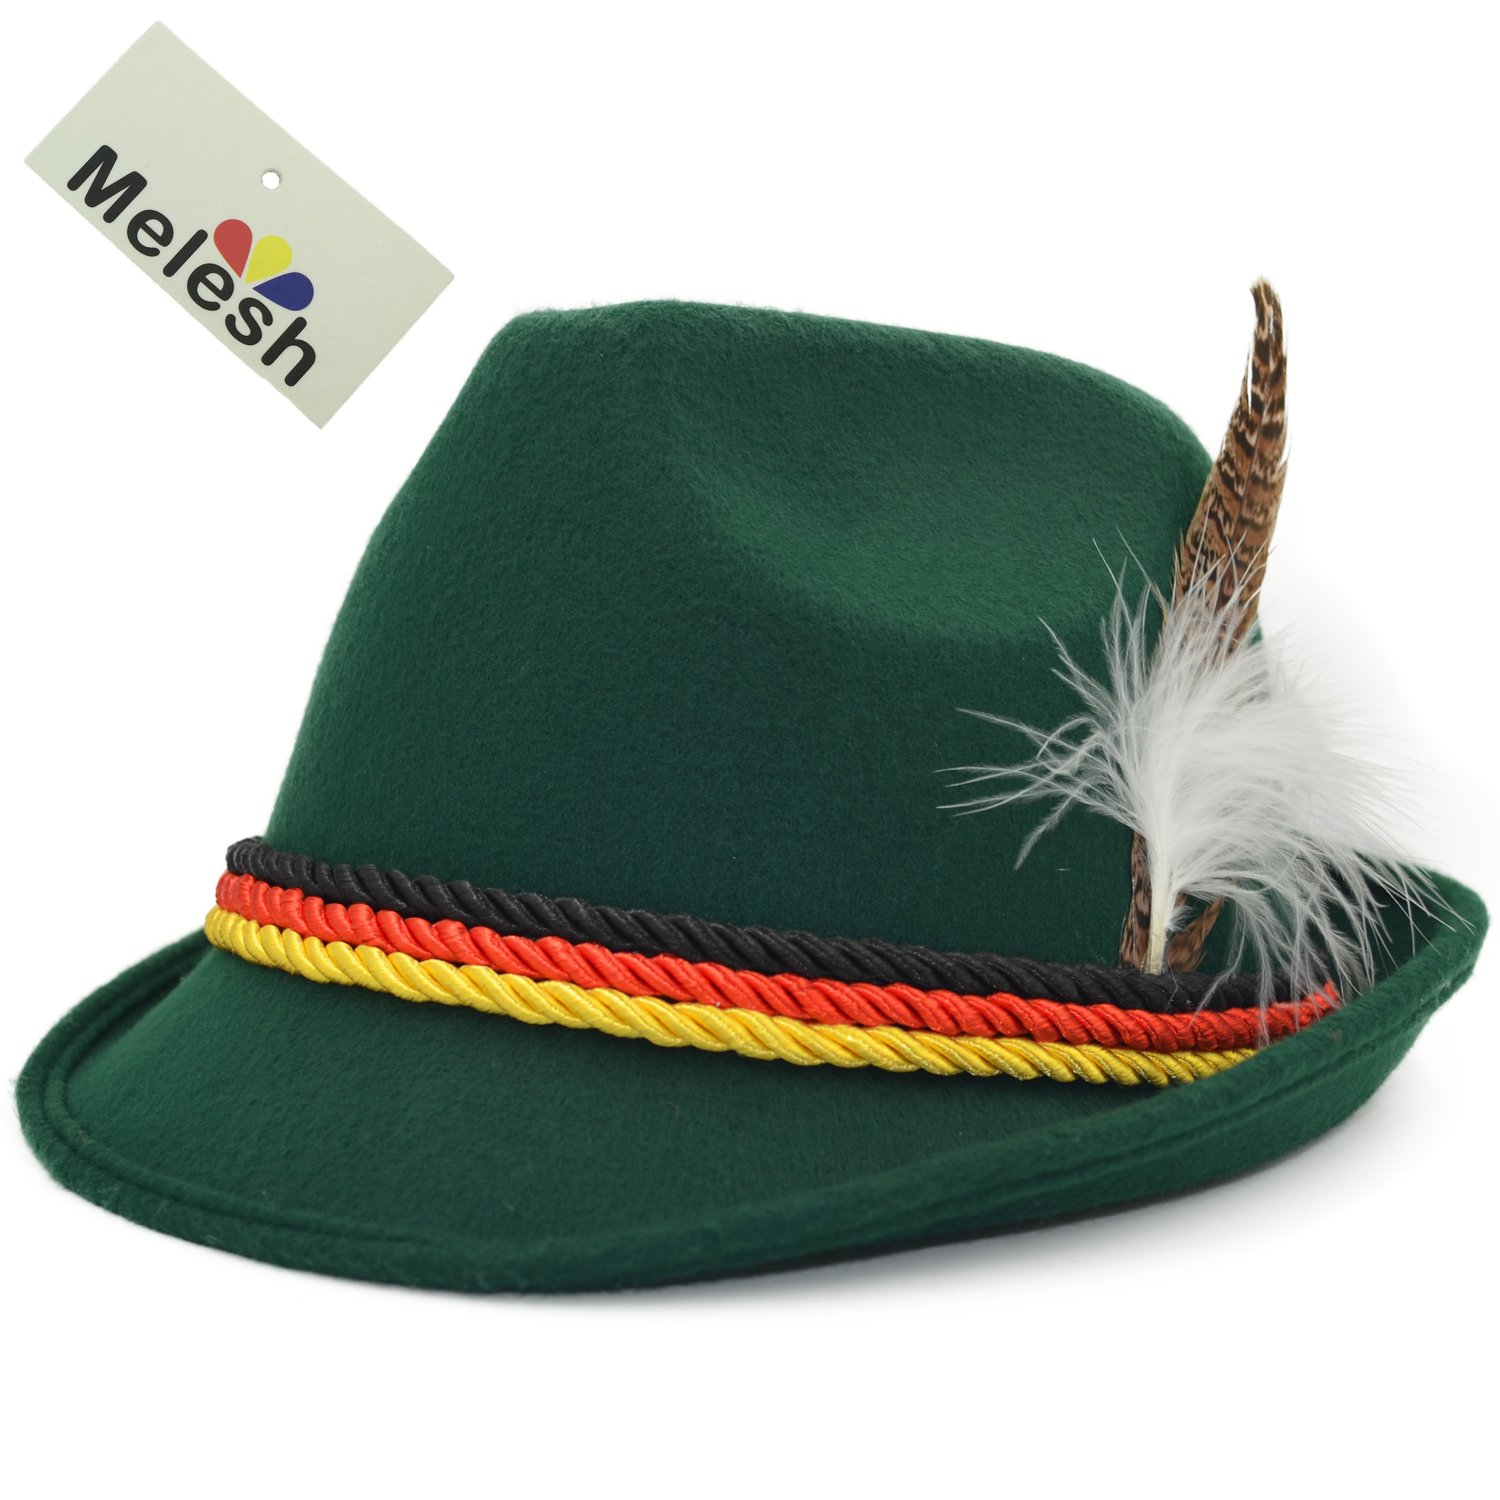 8be80116550 Get Quotations · Melesh Dark Green German Alpine Oktoberfest Bavarian  Costume Hat with Feather